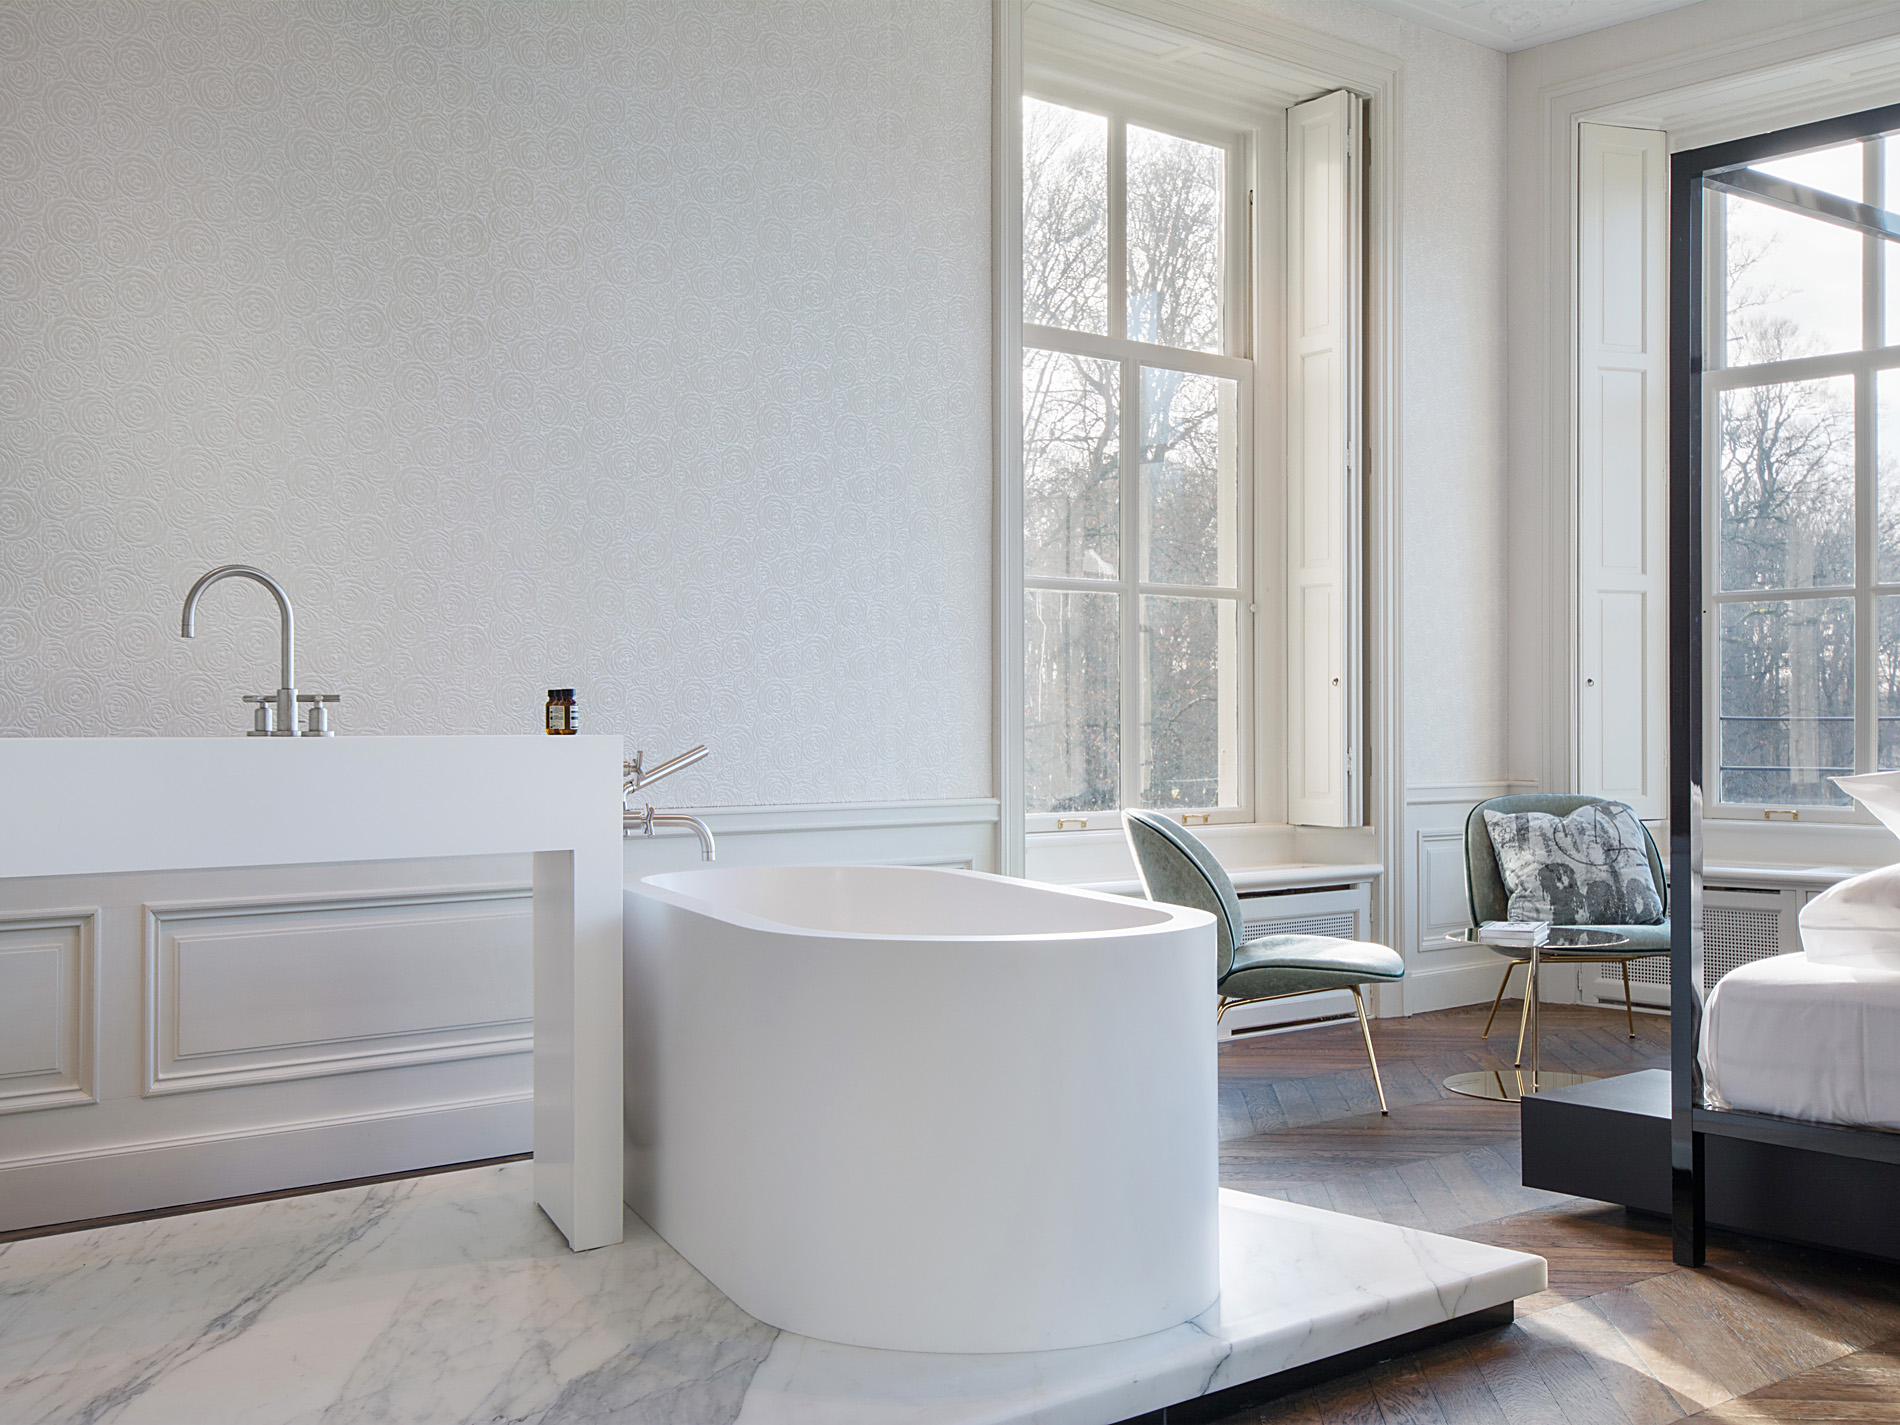 Commercial Bathroom • Hotel Parc Broekhuizen • Not Only White